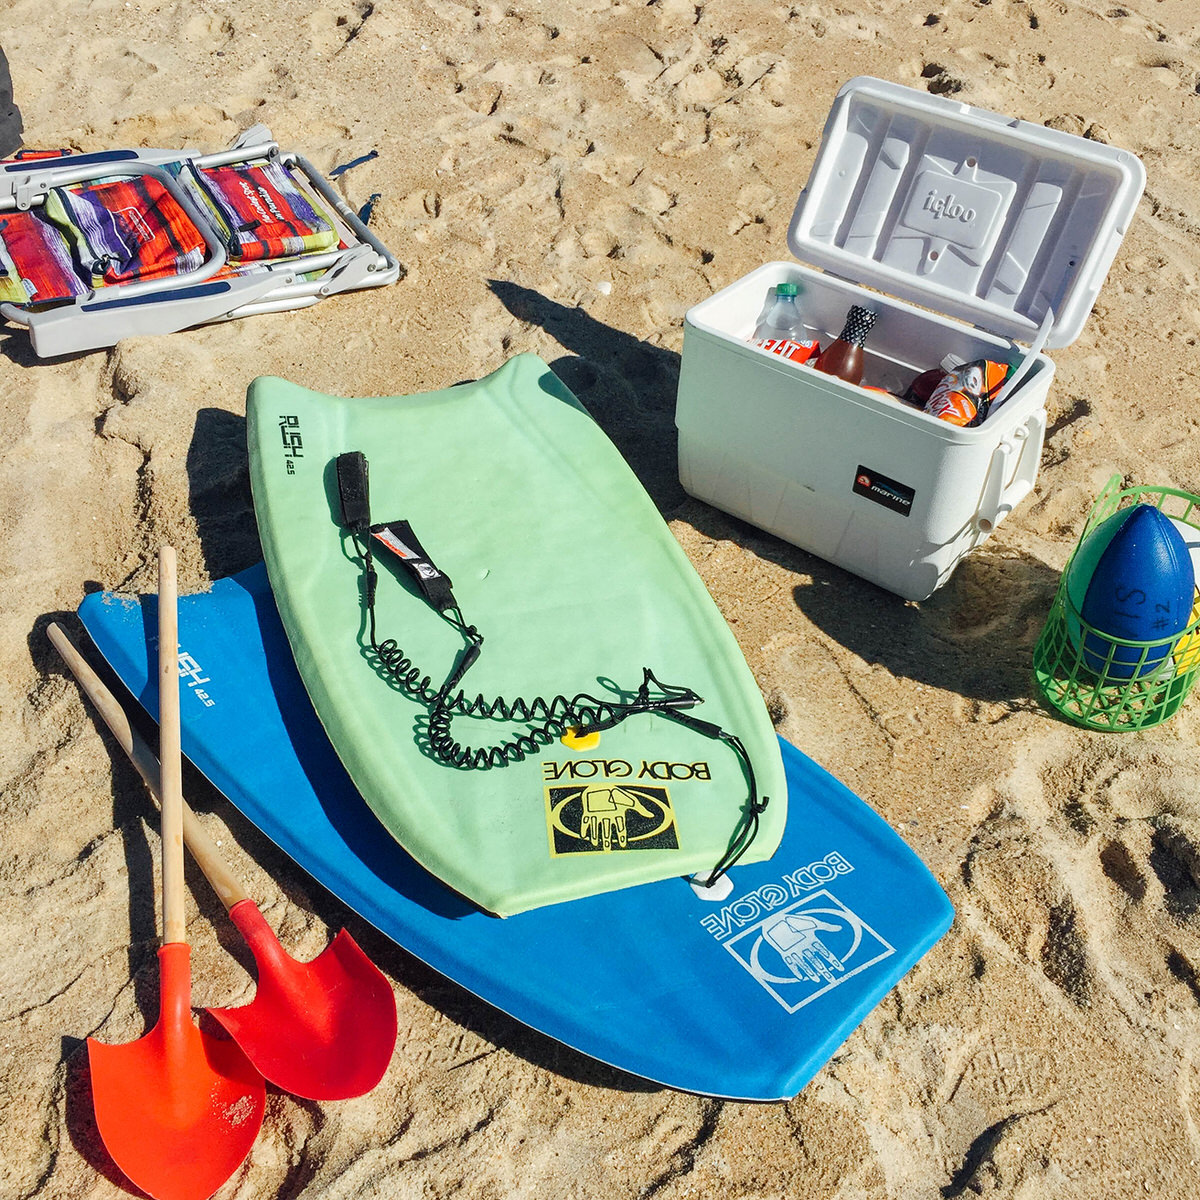 Beach toys and a cooler comes complimentary, along with beach towels, chairs and umbrellas, with the Pop-Up Beach Party.